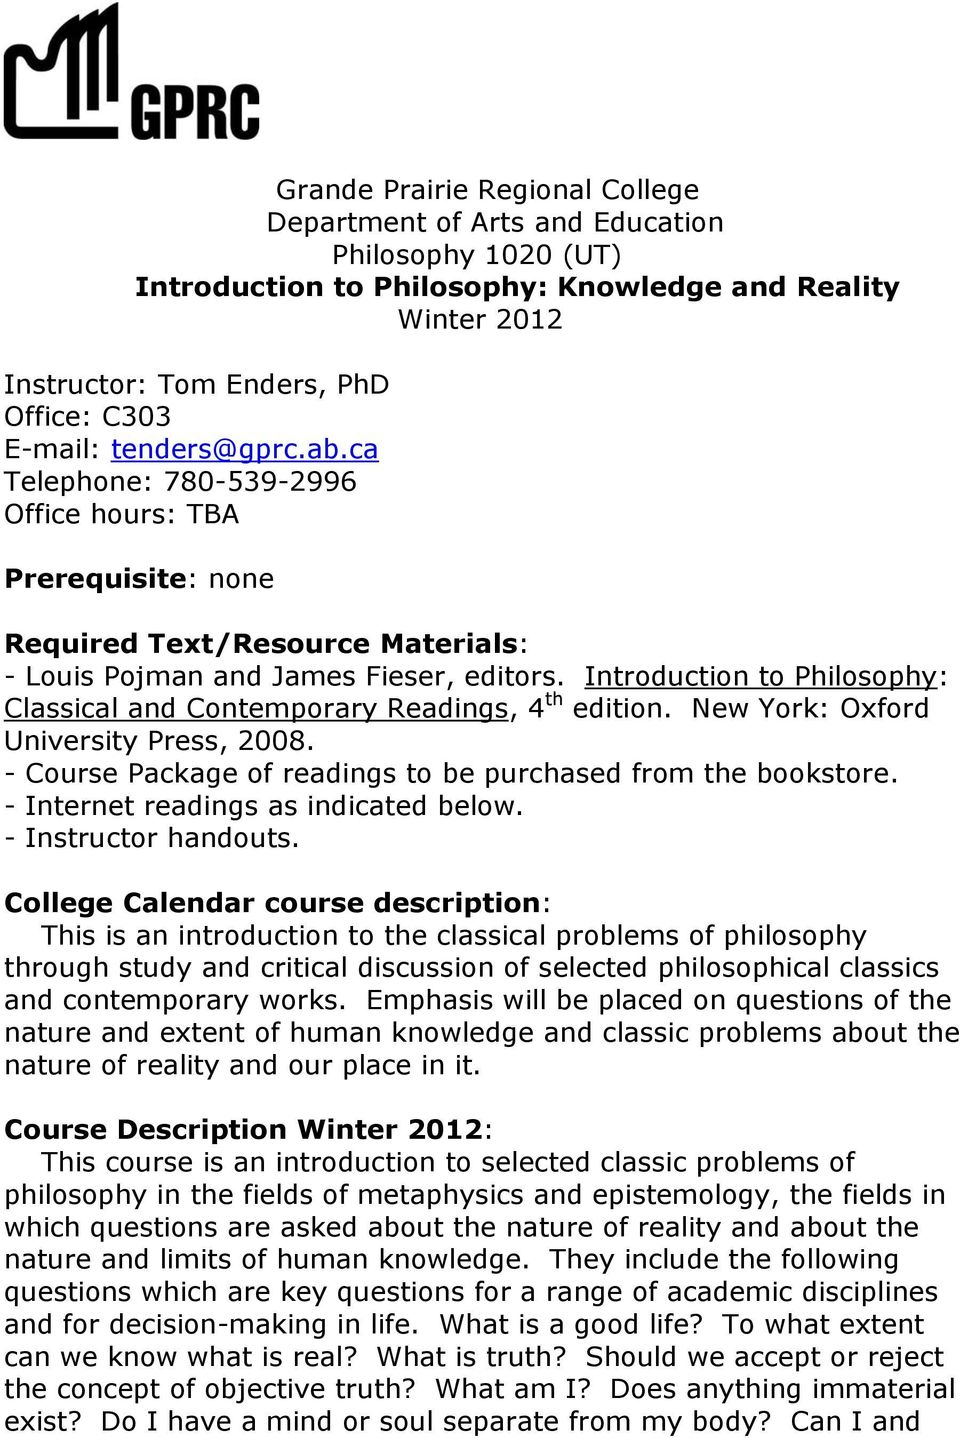 Introduction to Philosophy: Classical and Contemporary Readings, 4 th edition. New York: Oxford University Press, 2008. - Course Package of readings to be purchased from the bookstore.